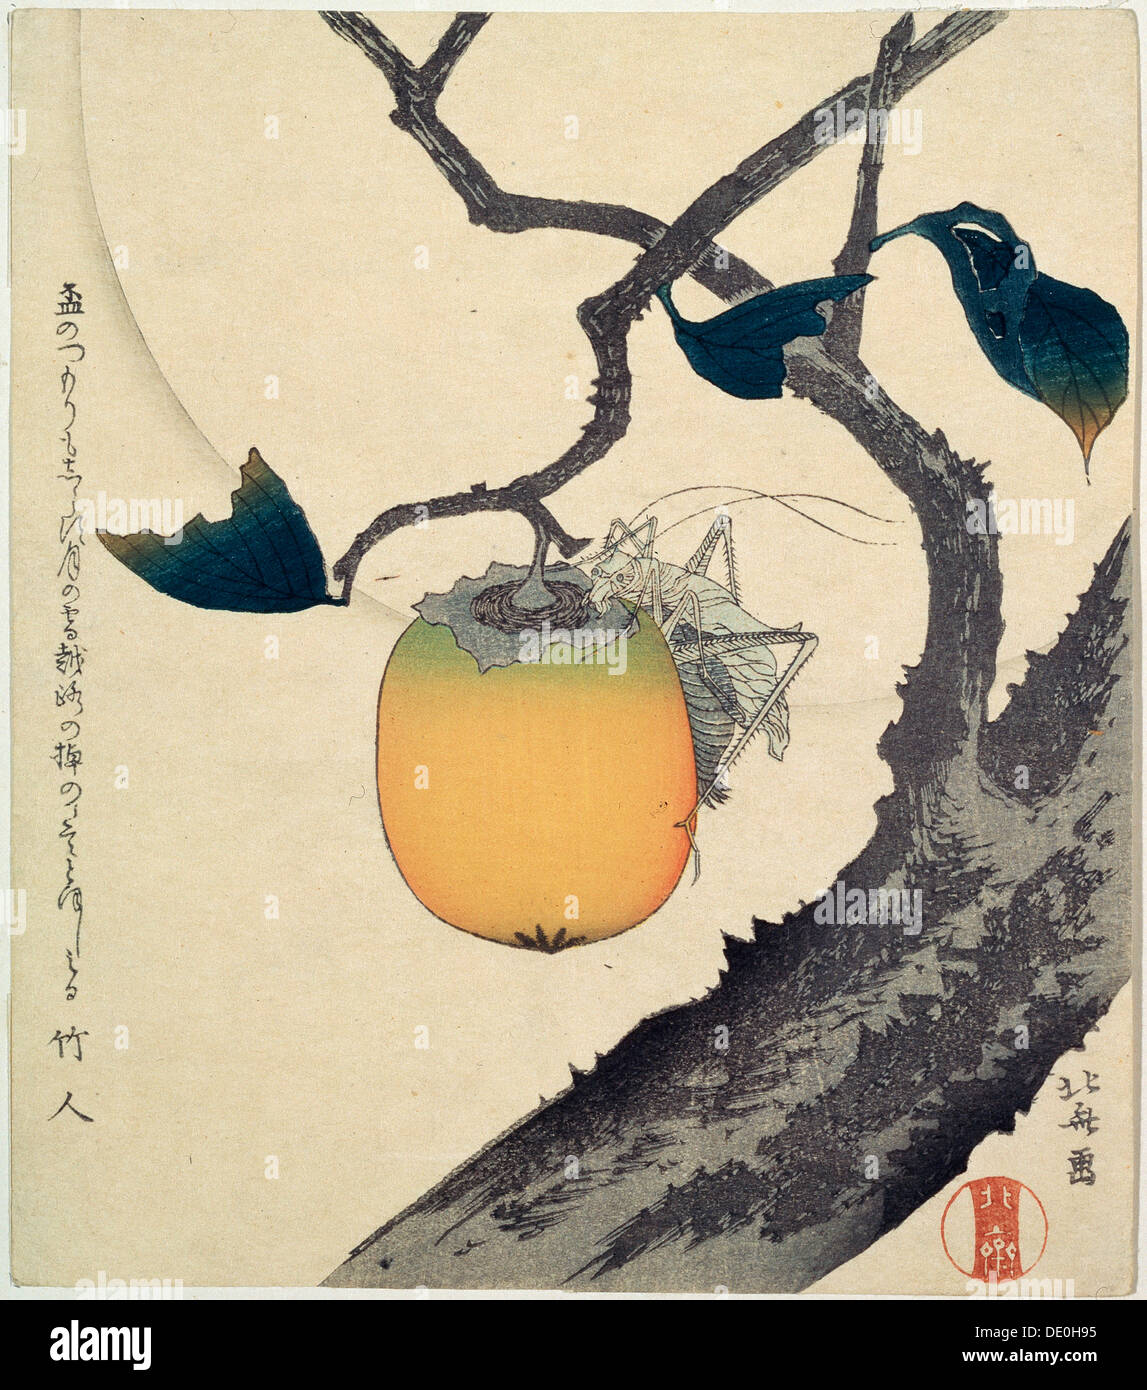 'Moon, Persimmon and Grasshopper', 1807.  Artist: Hokusai - Stock Image